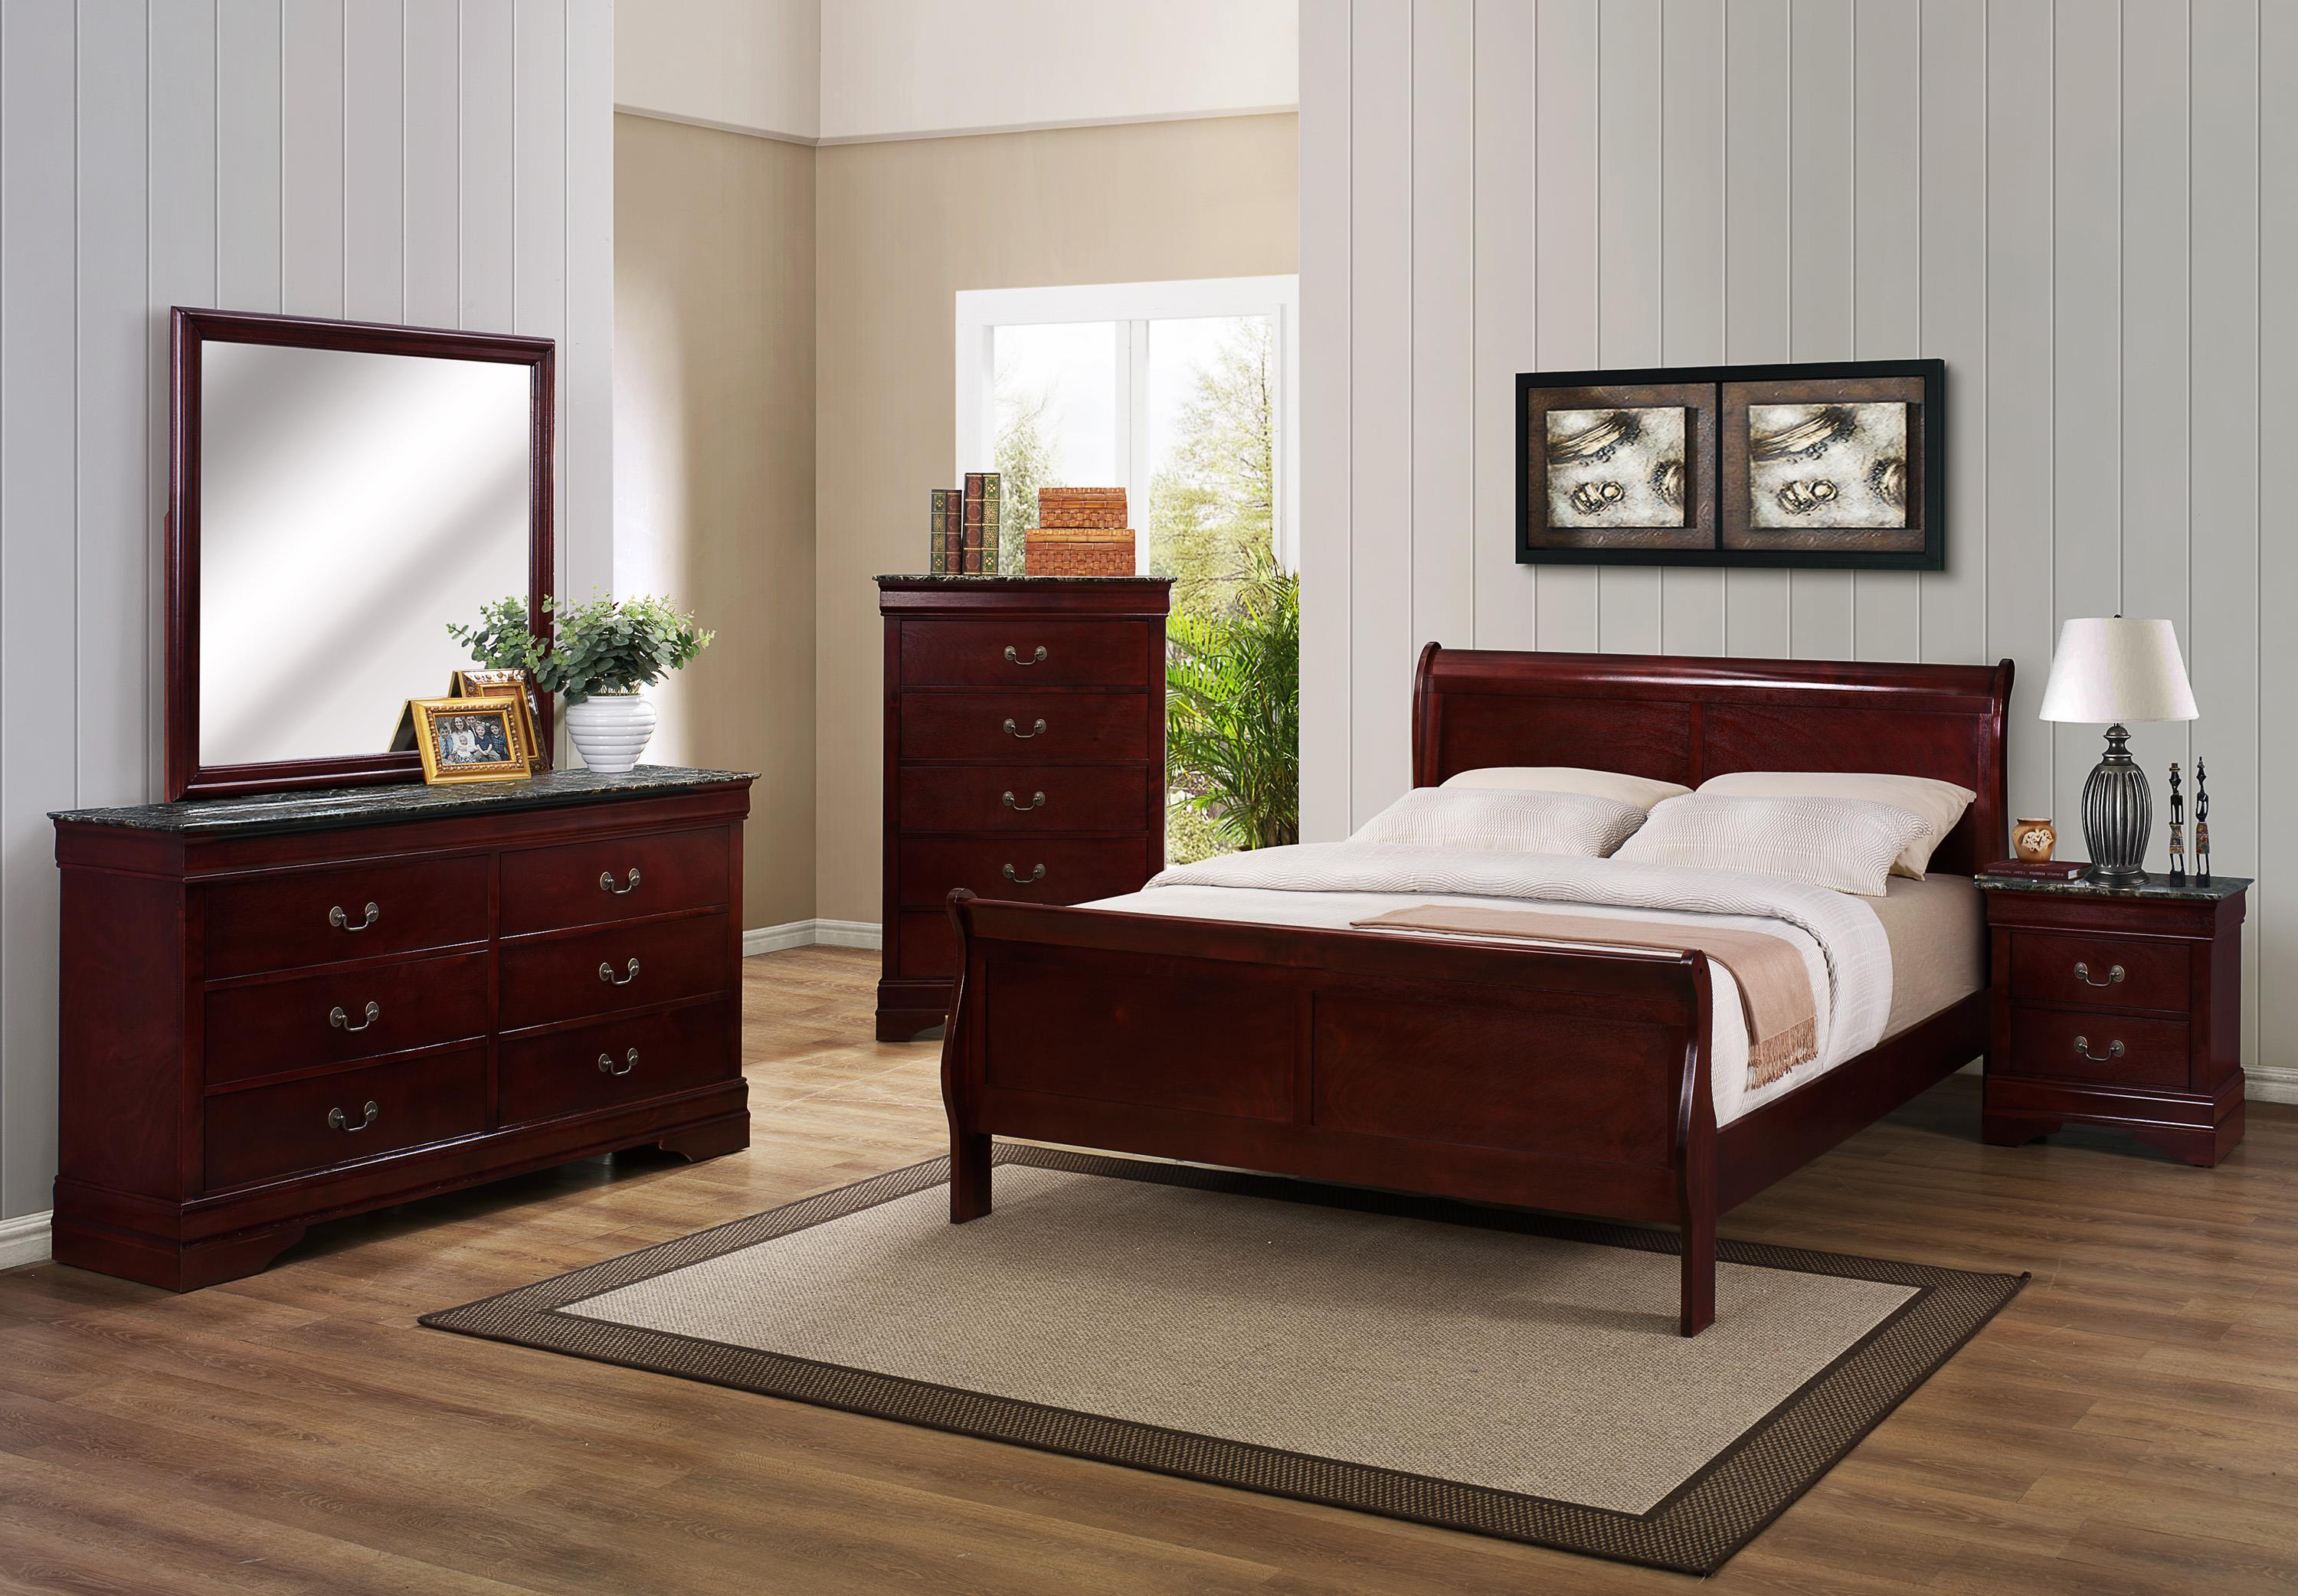 Crown Mark B3800 Louis Phillipe Full Bedroom Group - Item Number: B3800 Full Bedroom 2